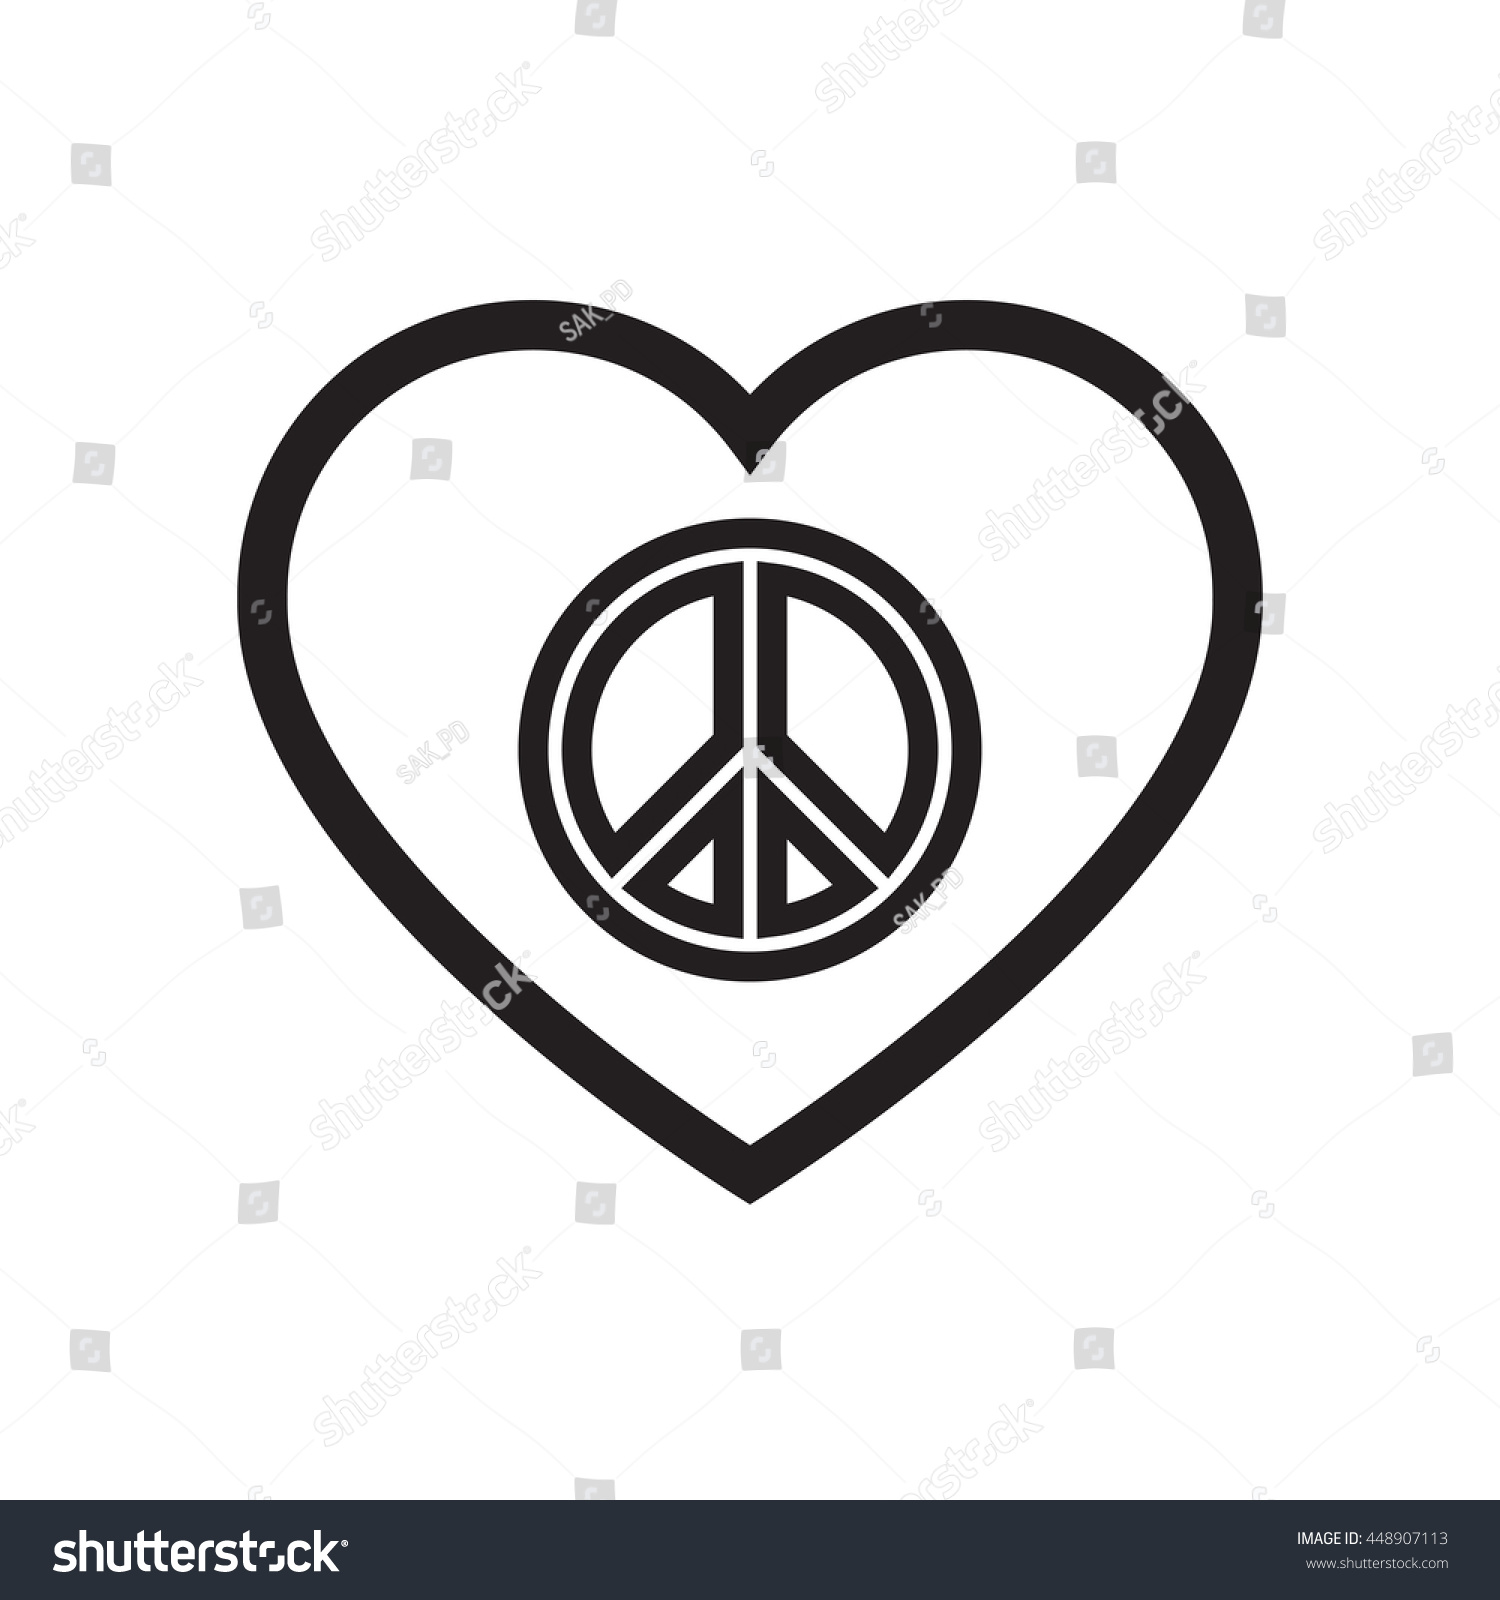 Peace symbol inside heart shapesign peace stock vector 448907113 peace symbol inside heart shapegn of peace for international peace day on september biocorpaavc